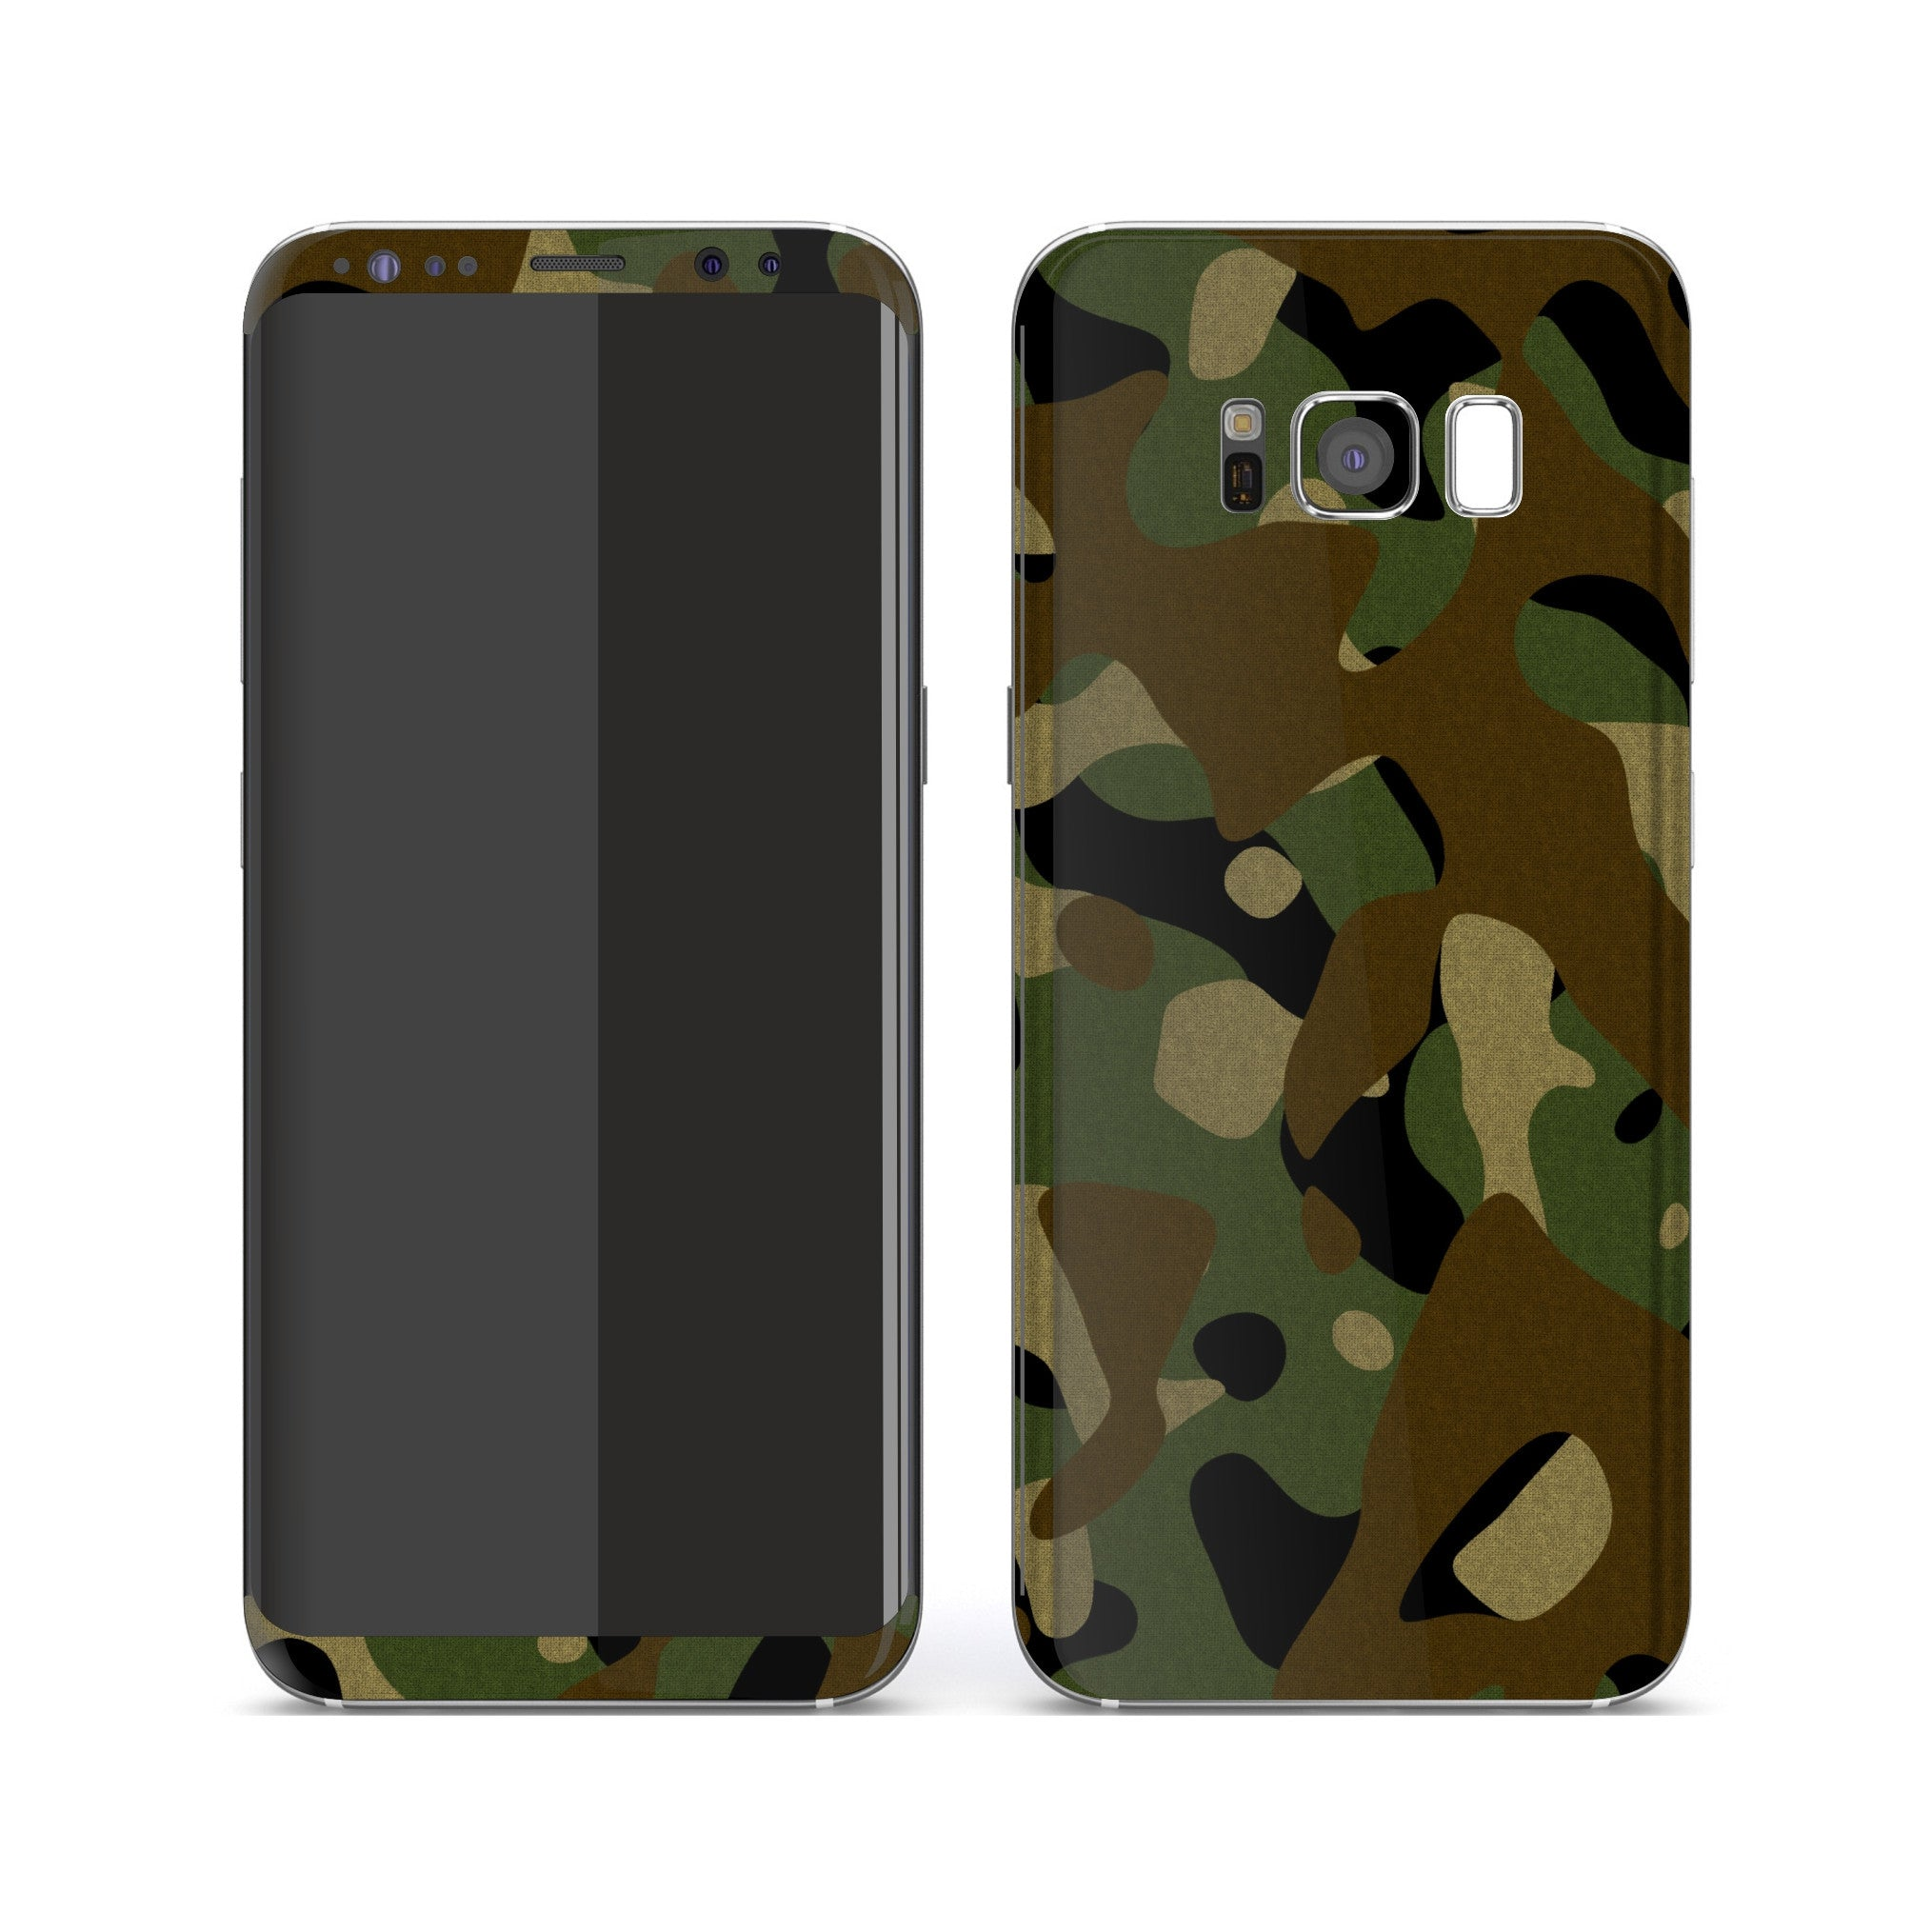 Samsung Galaxy S8+ Print Custom Signature Camouflage Classic Skin Wrap Decal by EasySkinz